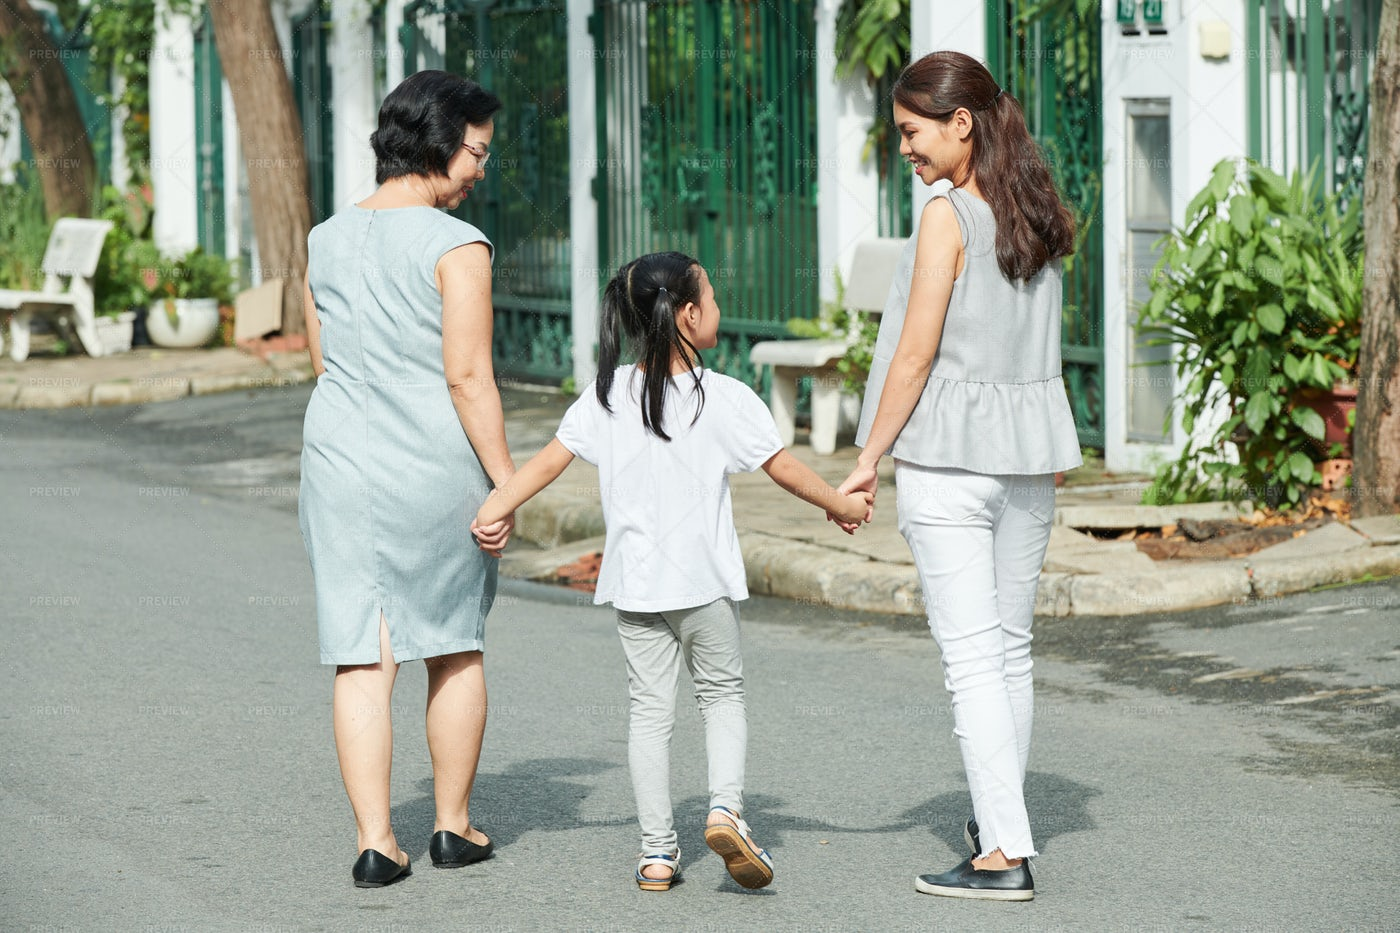 Asian Family Outdoors In The City: Stock Photos